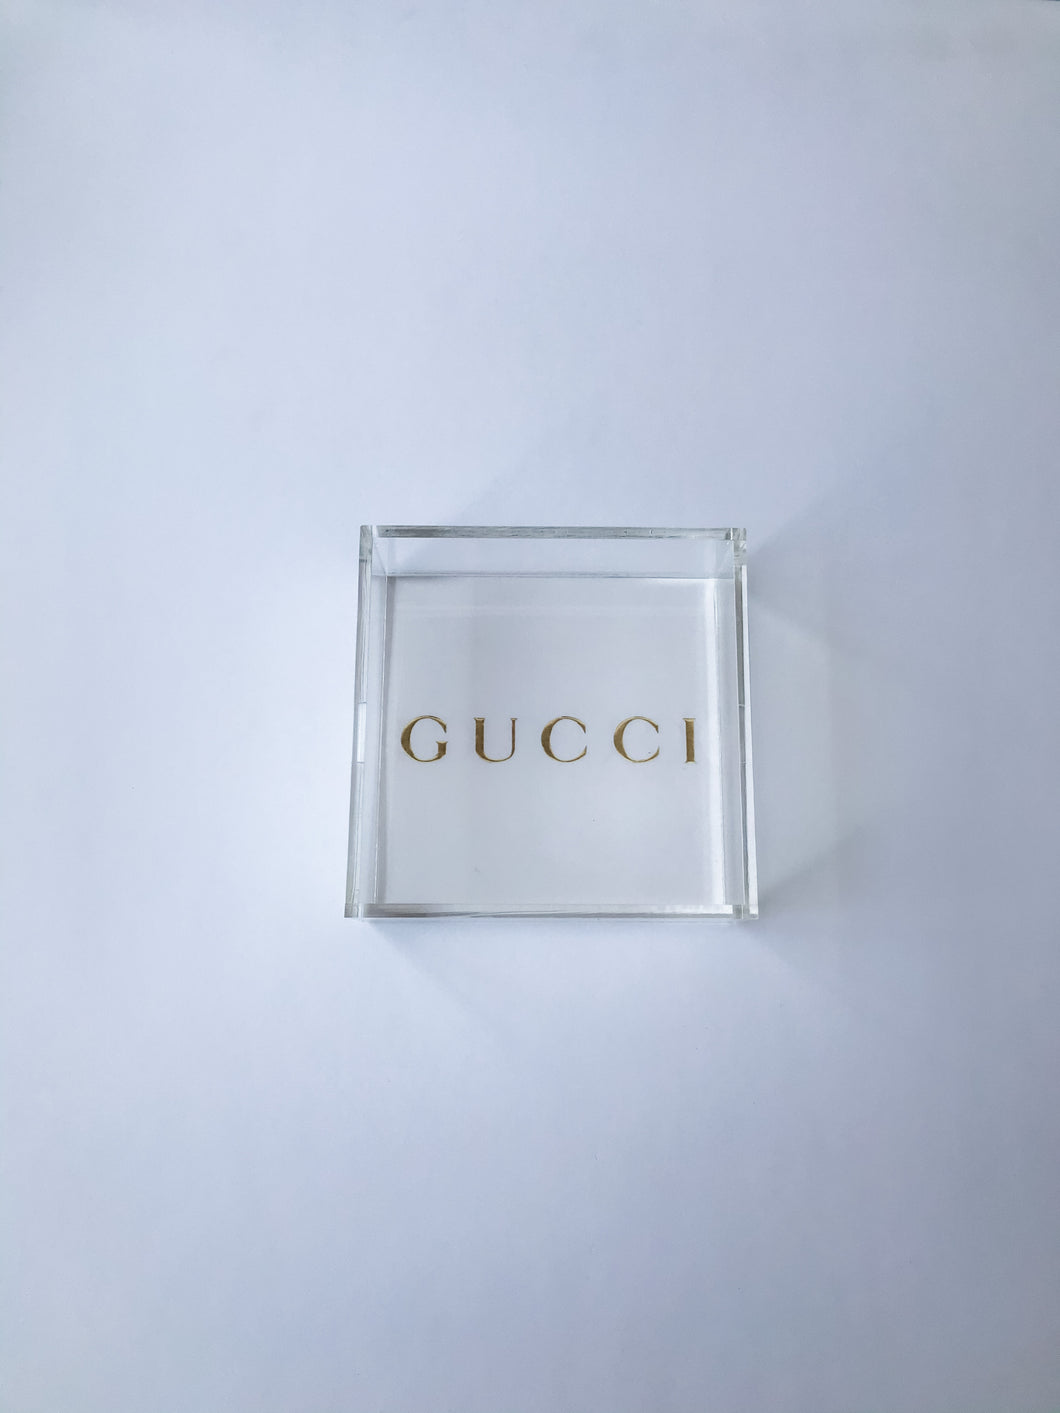 GUCCI GOLD (6x6) TRAY  - BACK ORDERED